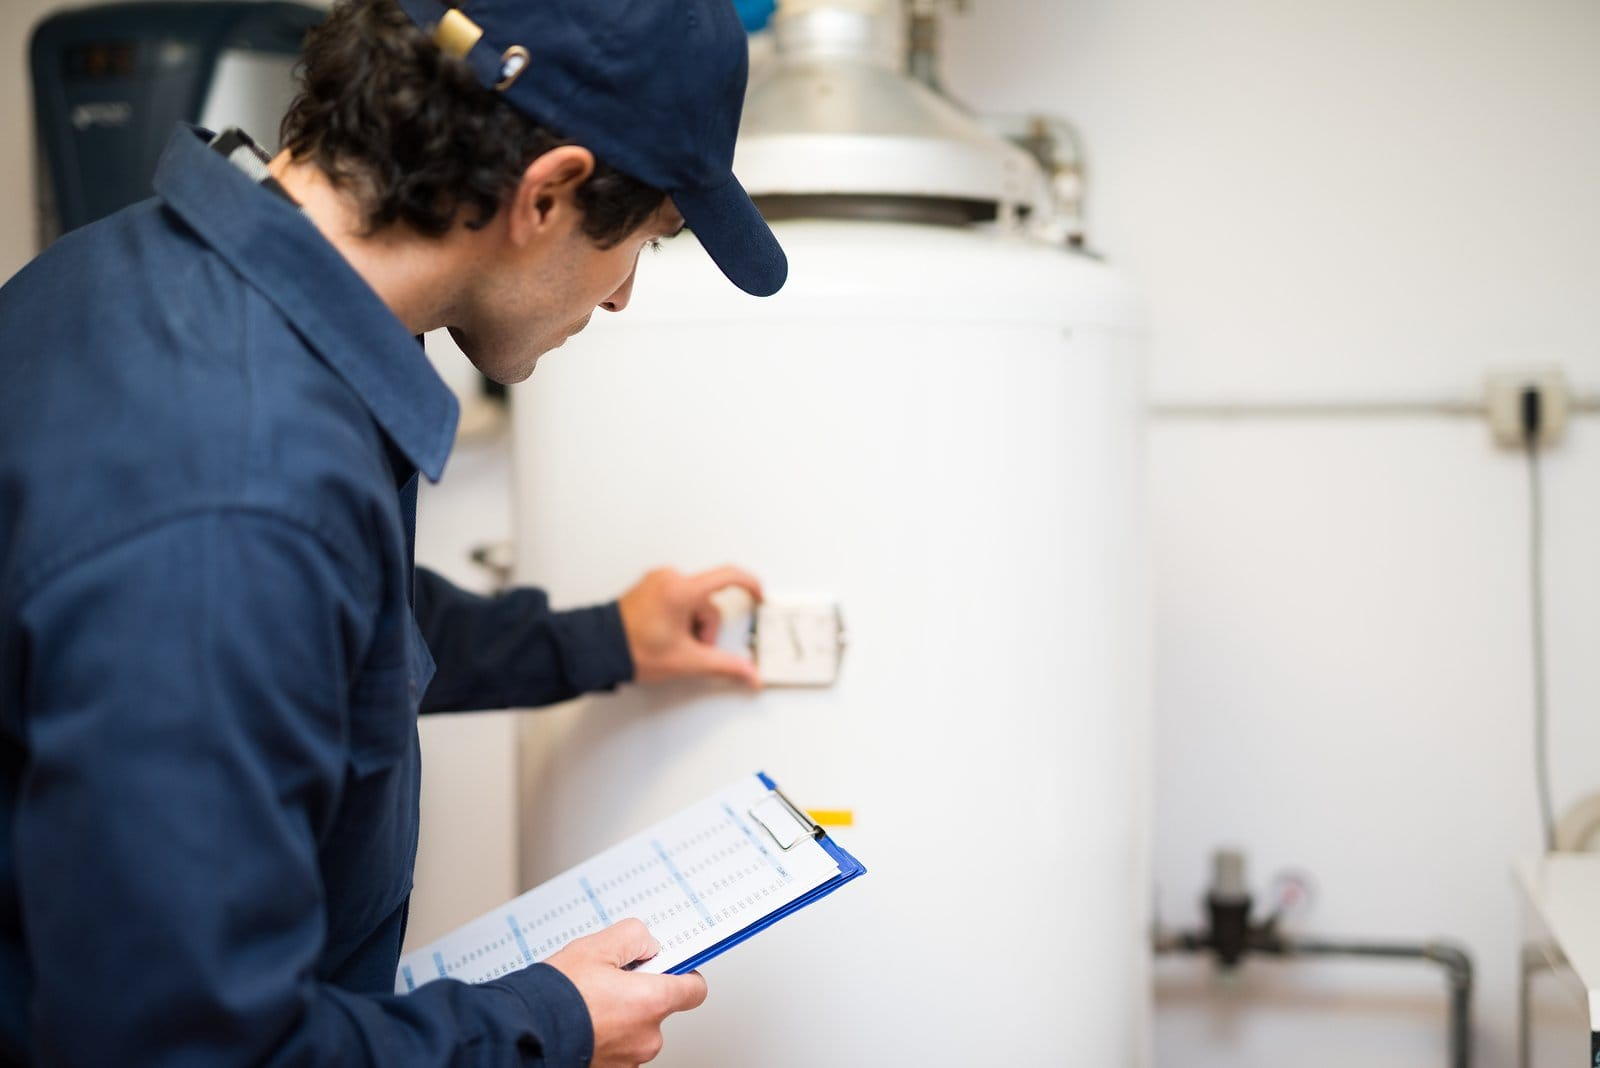 Plumber checking a water heater